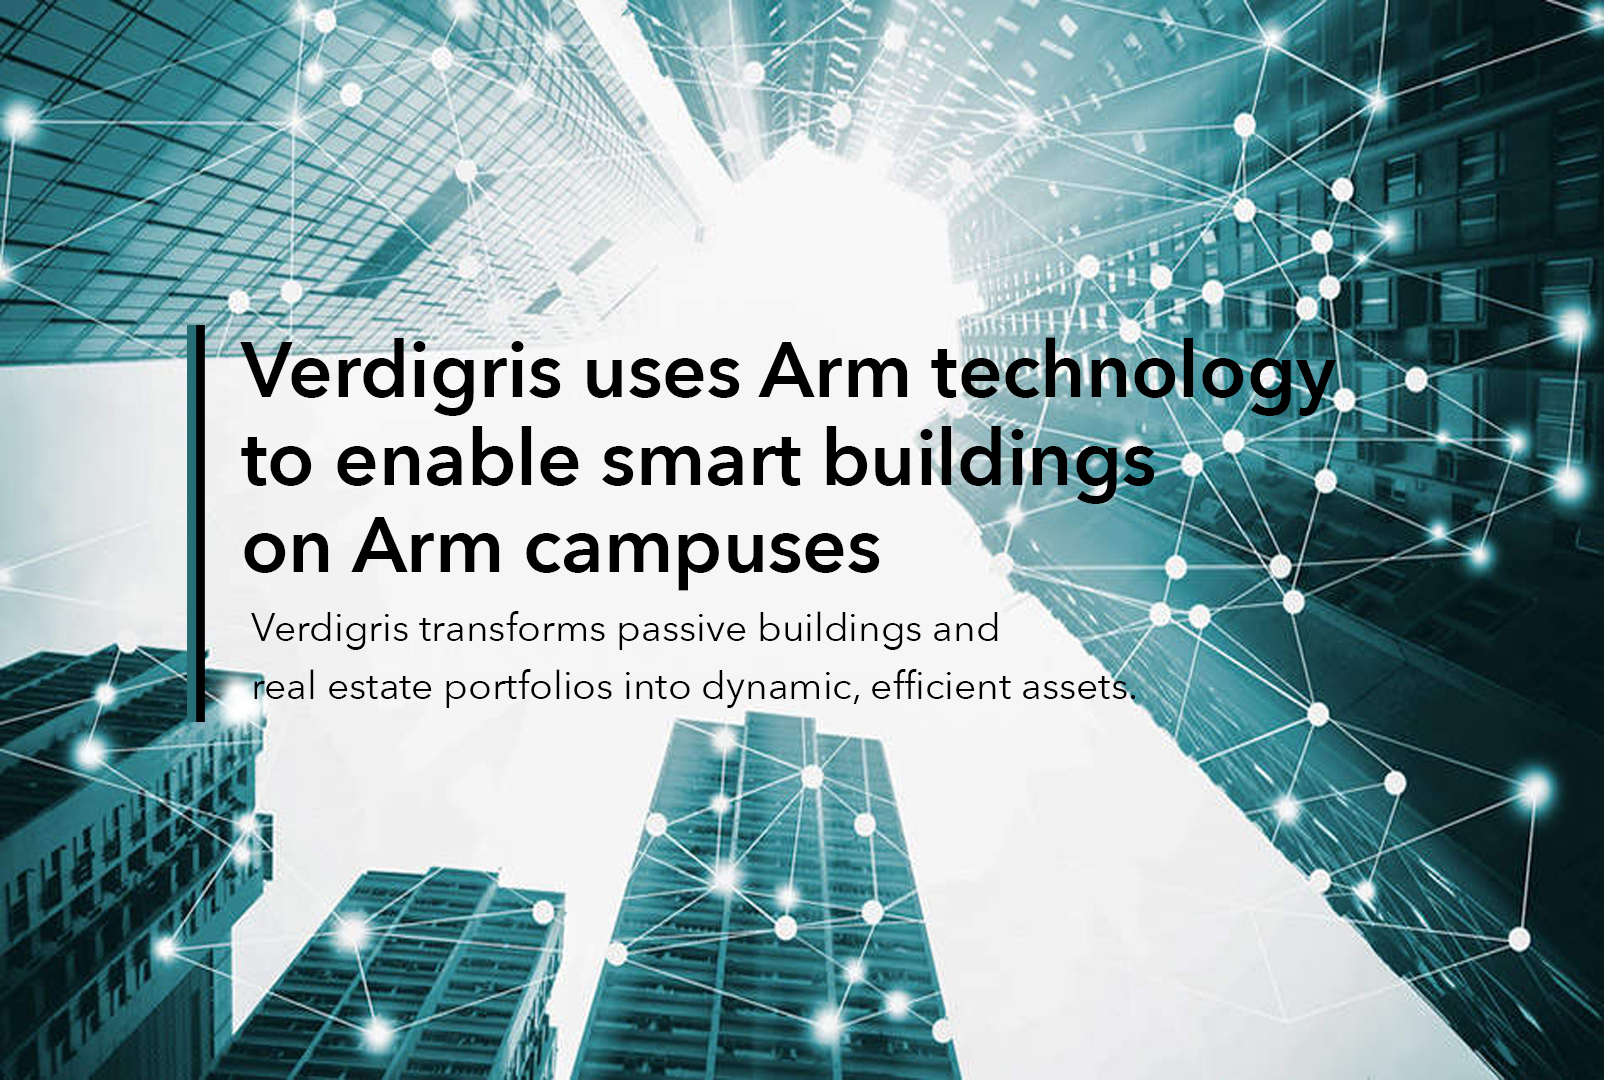 ARM Smart Buildings enabled by Verdigris